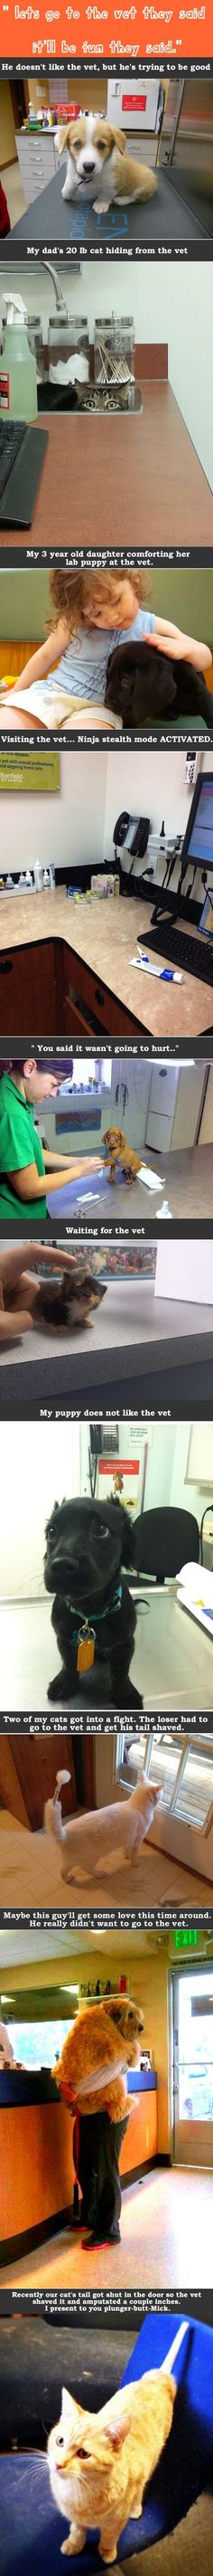 """let's go to the vet they said, it'll be fun they said."" These poor pets and their rational fears of the vet!"